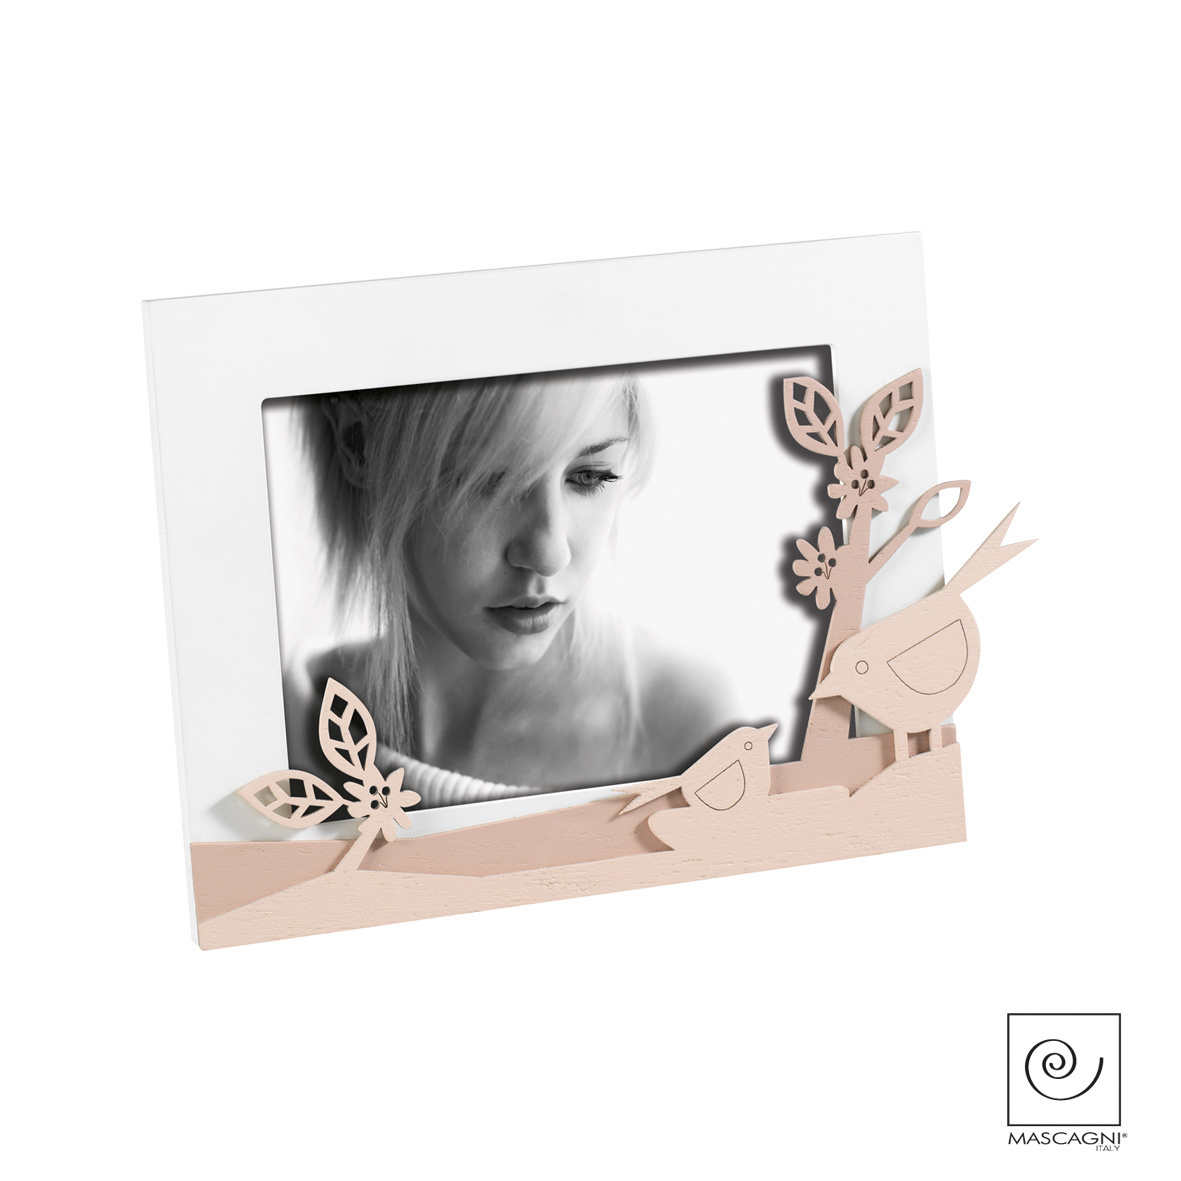 Art Mascagni A896 PHOTO FRAME 13X18 - COL.PINK